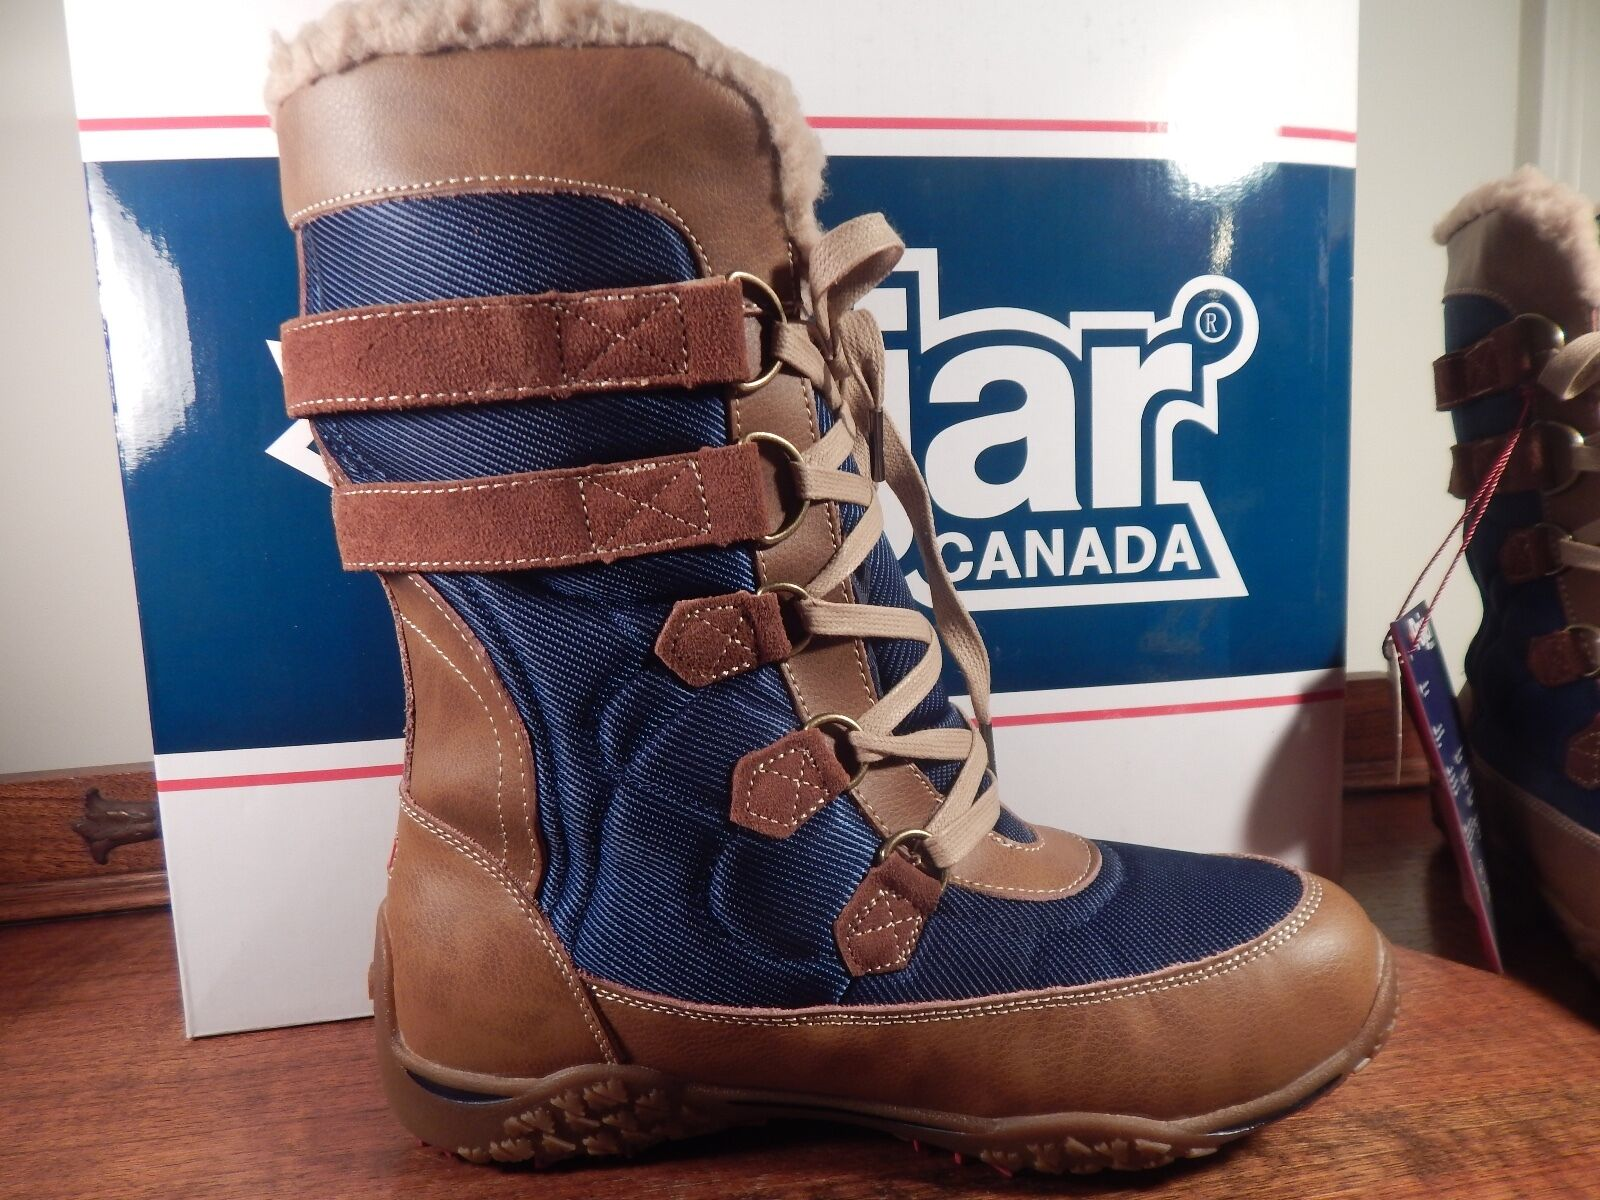 Pajar Canada Aventure Low Donna Cognac/Navy Winter boots 7.5-8 size 38 US 7.5-8 boots 14e5e2